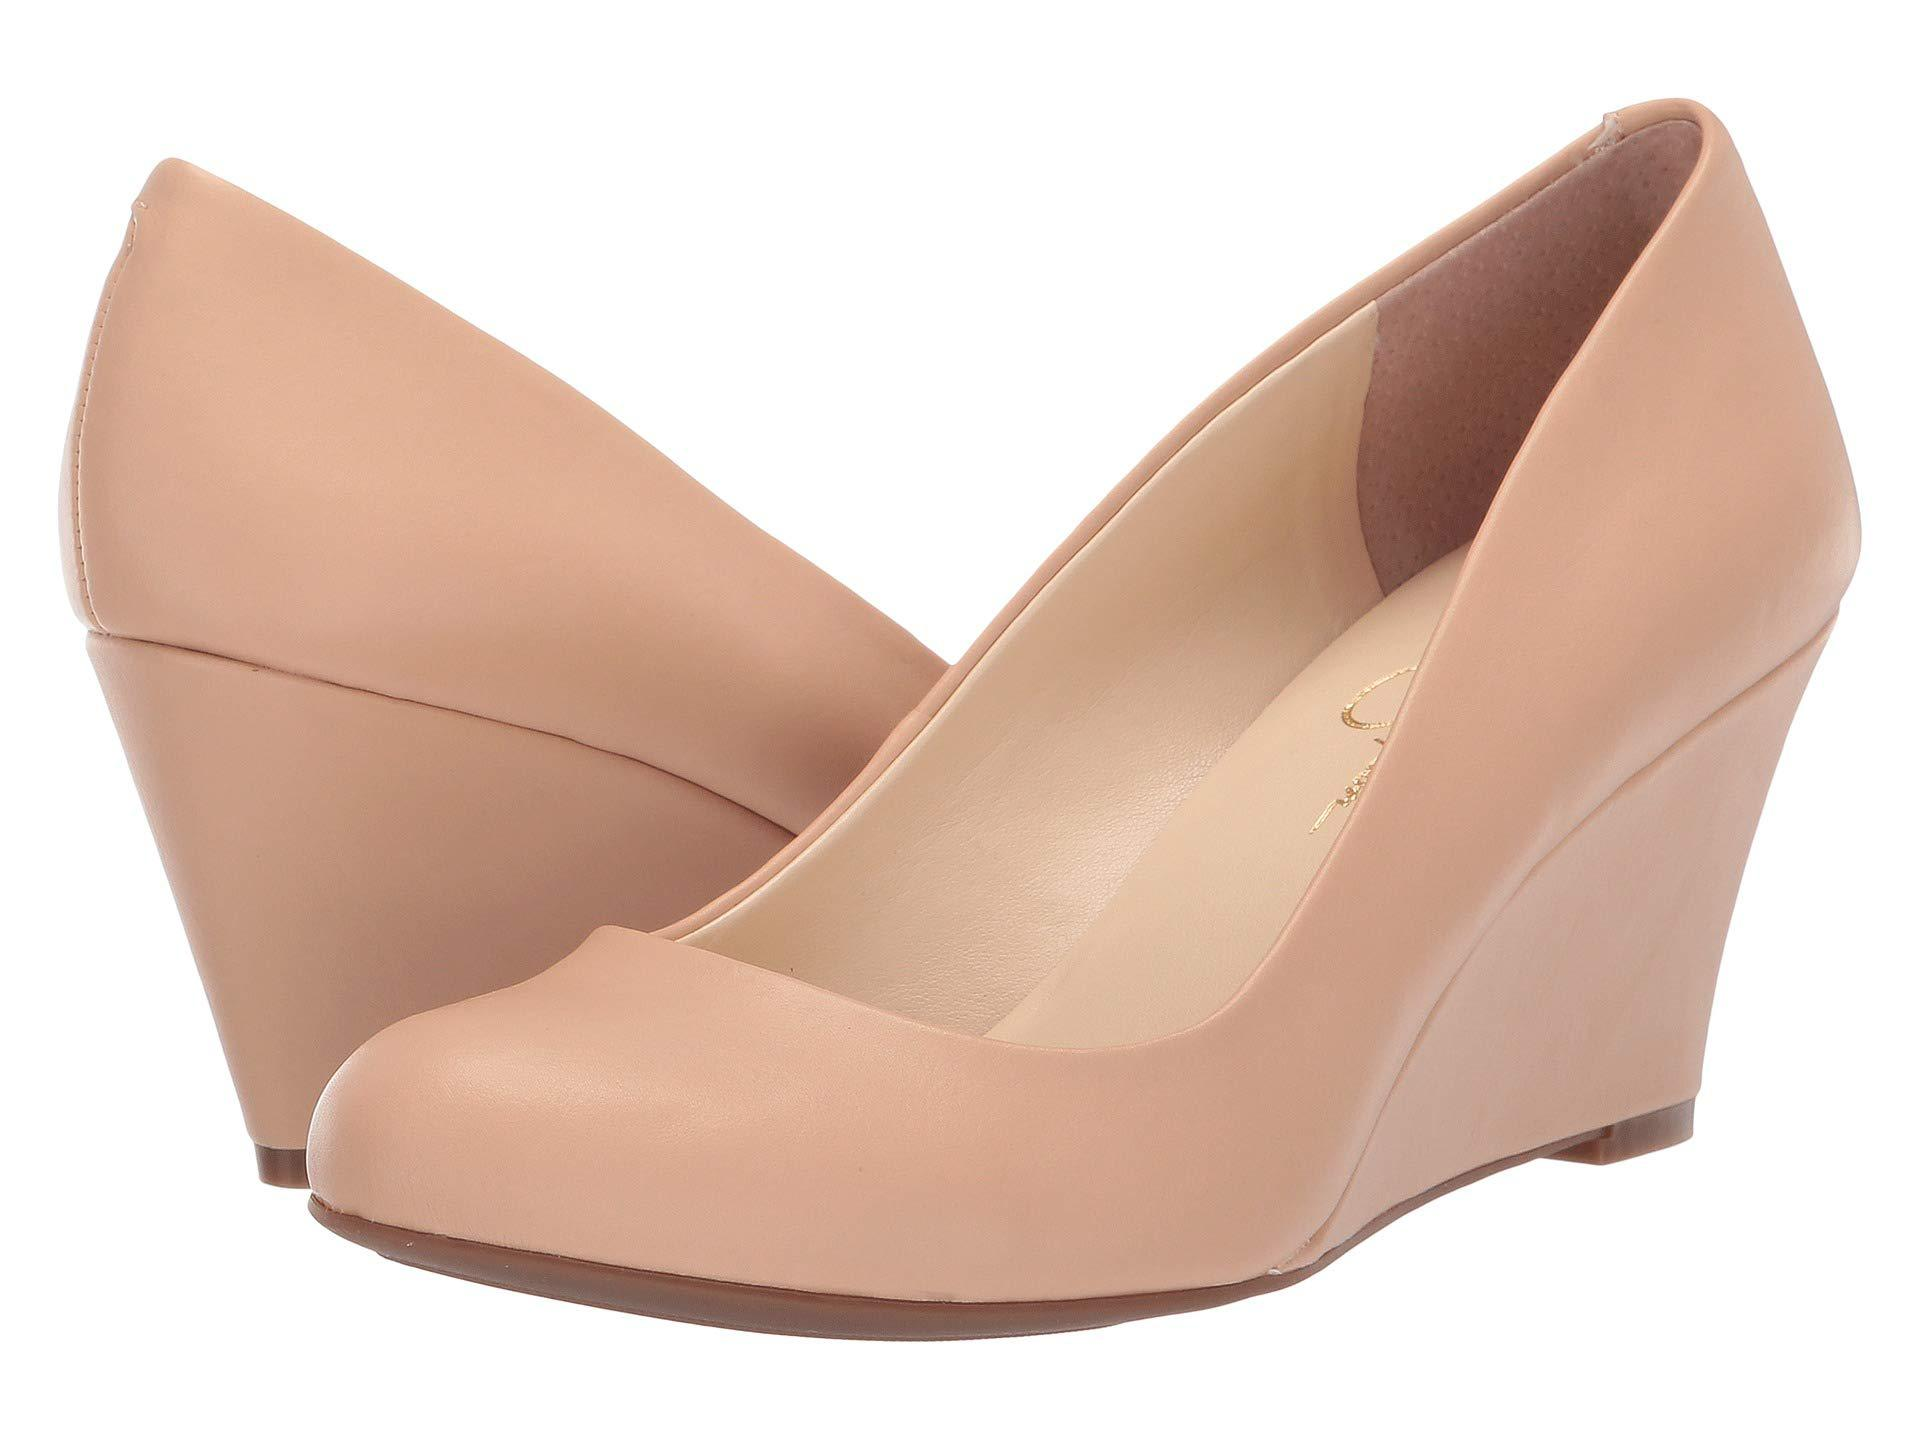 5a8331f9a1e Jessica Simpson. Natural Sampson - Exclusive (nude Blush Patent) Women s  Wedge Shoes